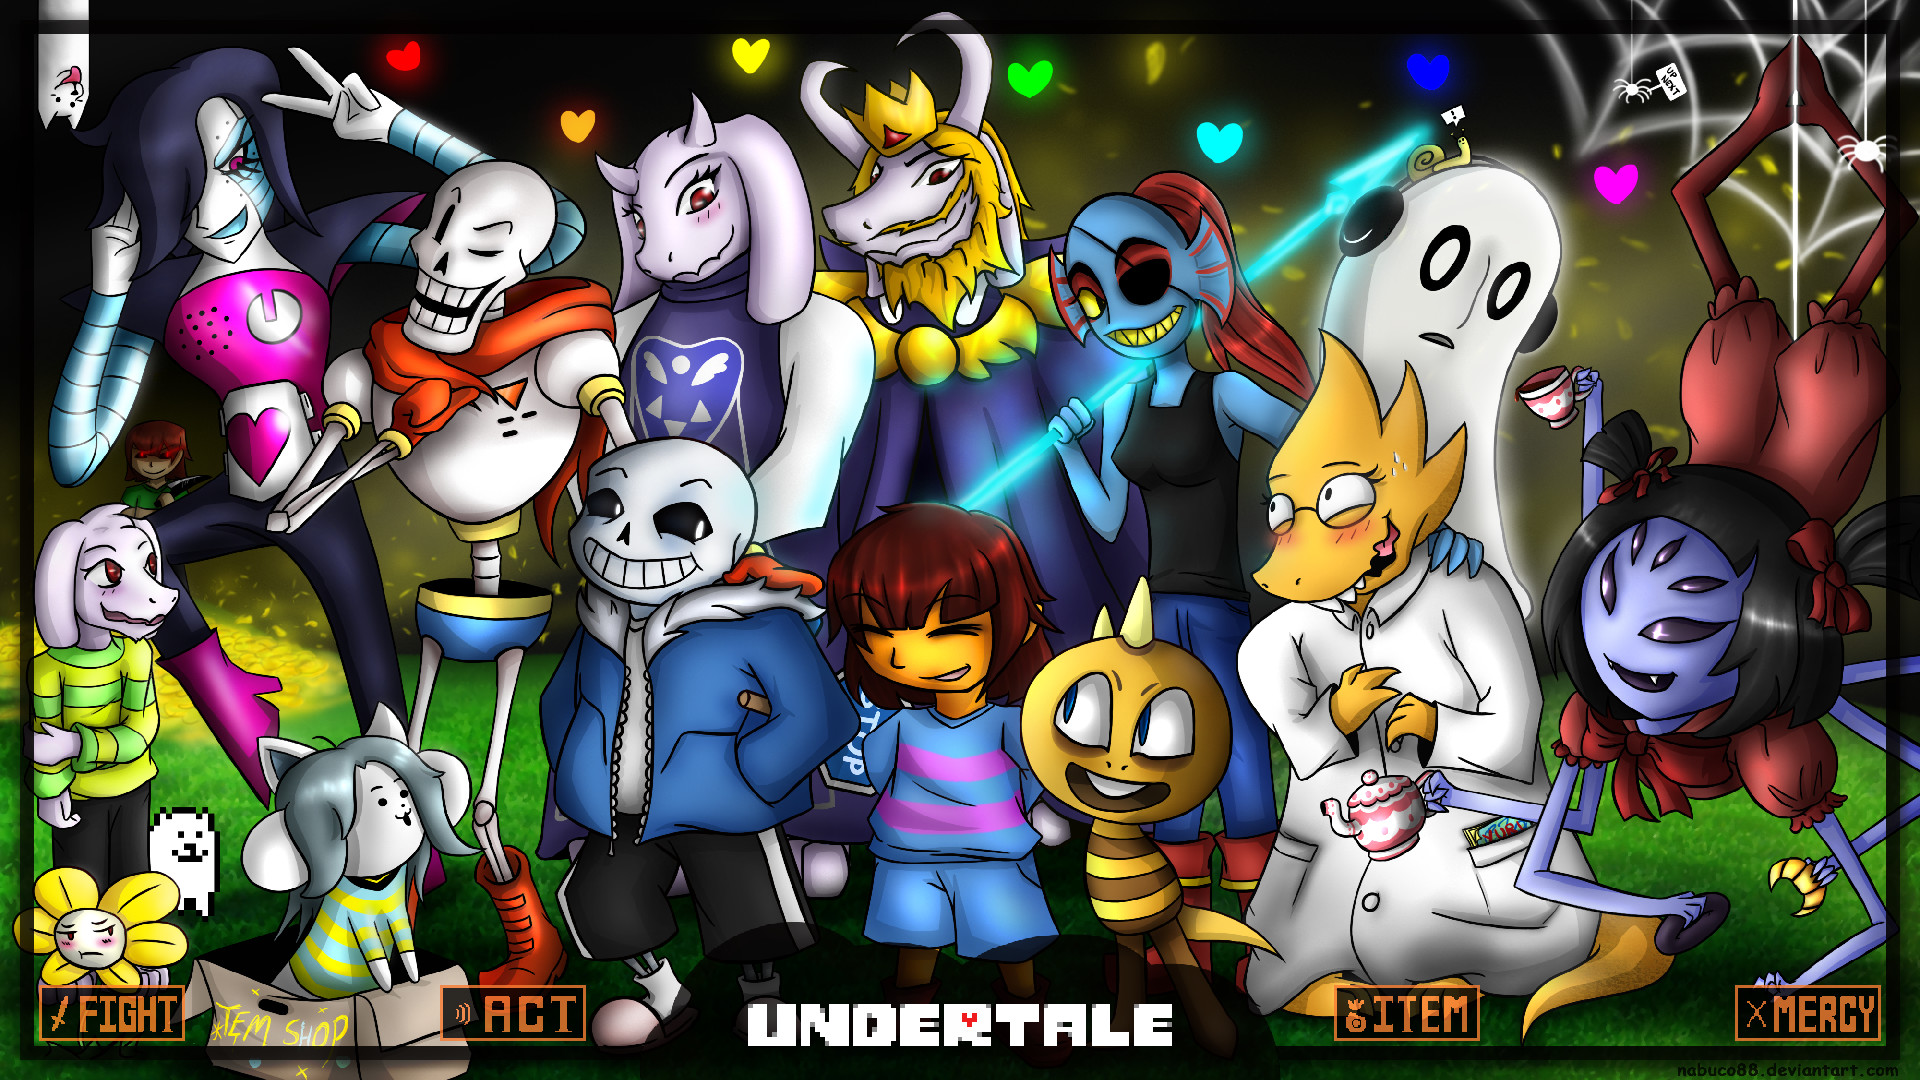 Undertale High Quality Wallpapers Gallery, DL.6124388